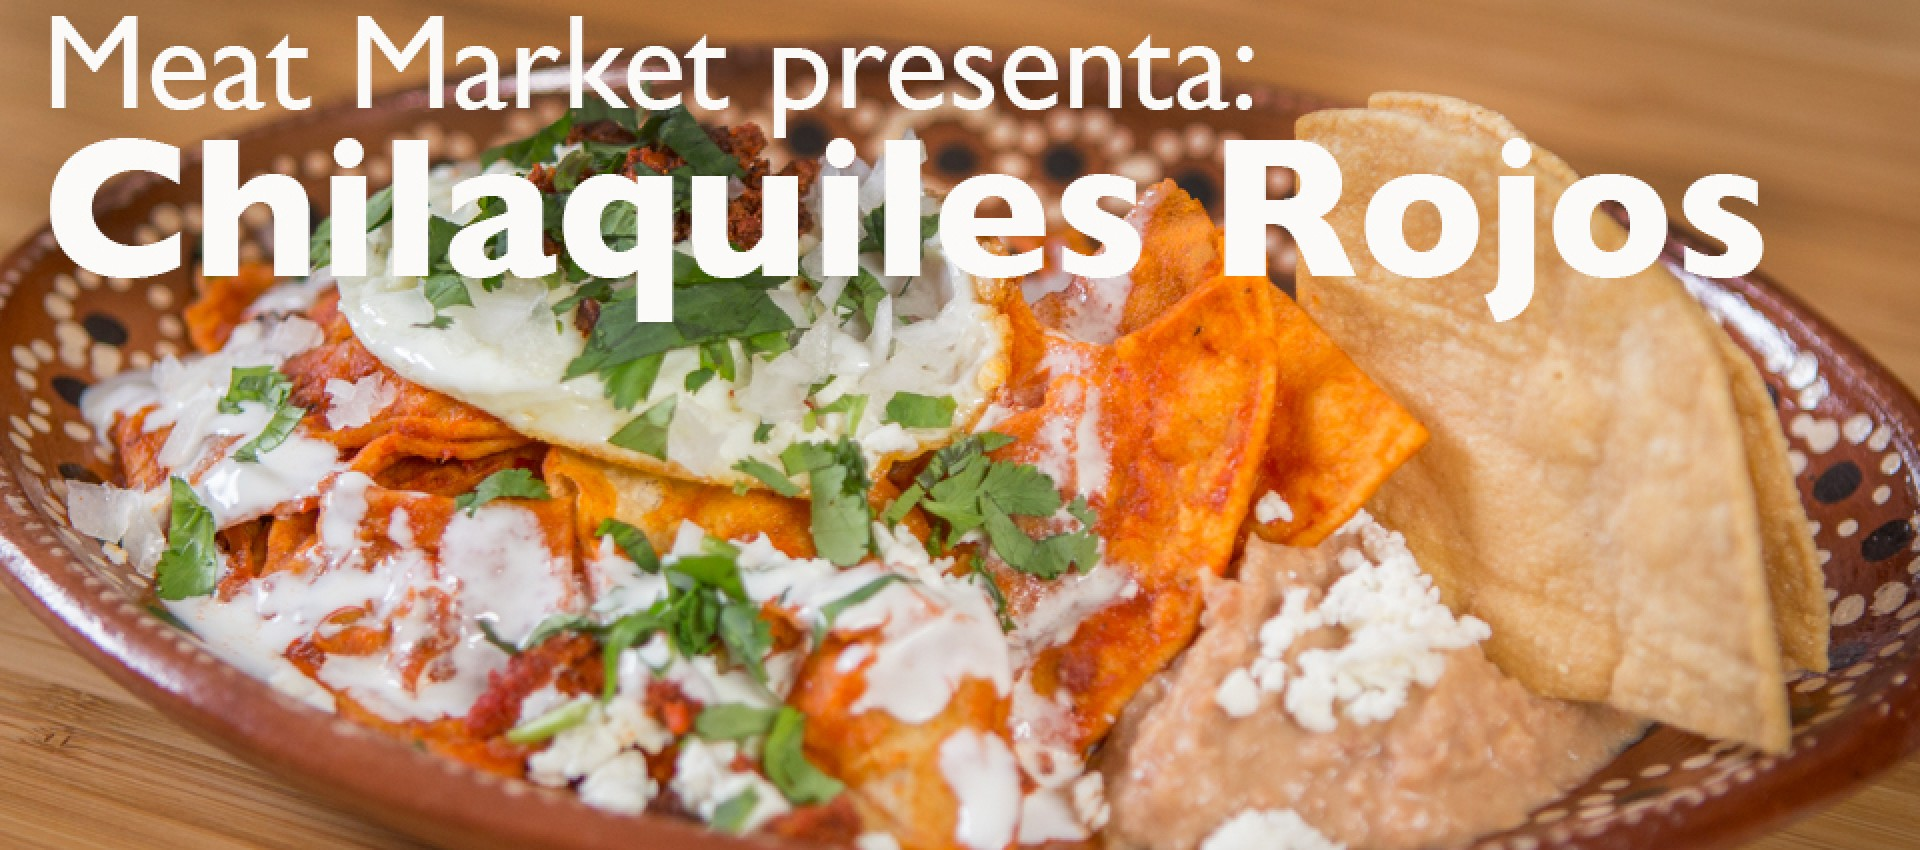 Chilaquiles Rojos Recipe Image